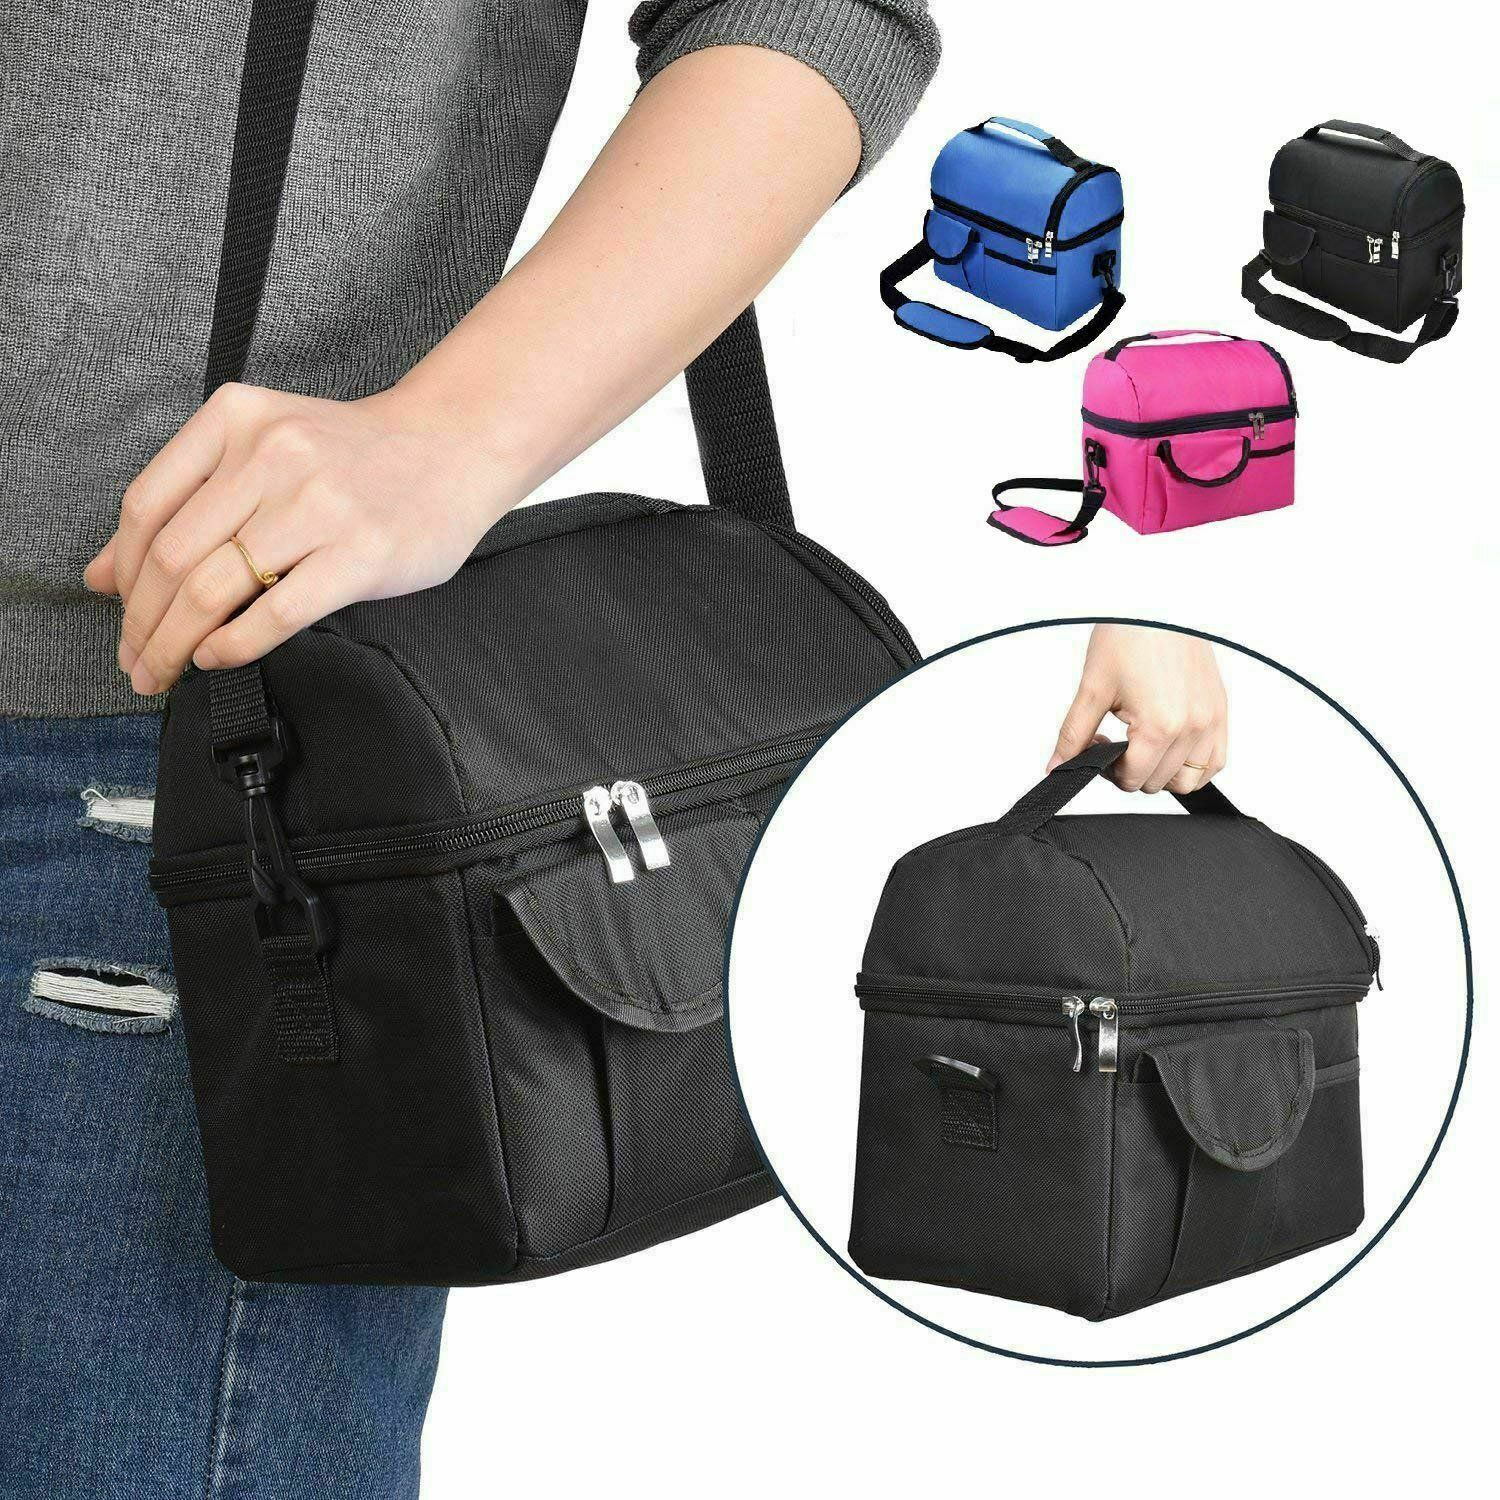 Insulated Lunch Box Tote Men Women Travel Hot Cold Food Cooler Thermal Bag Portable Insulated Lunch Bag 8L